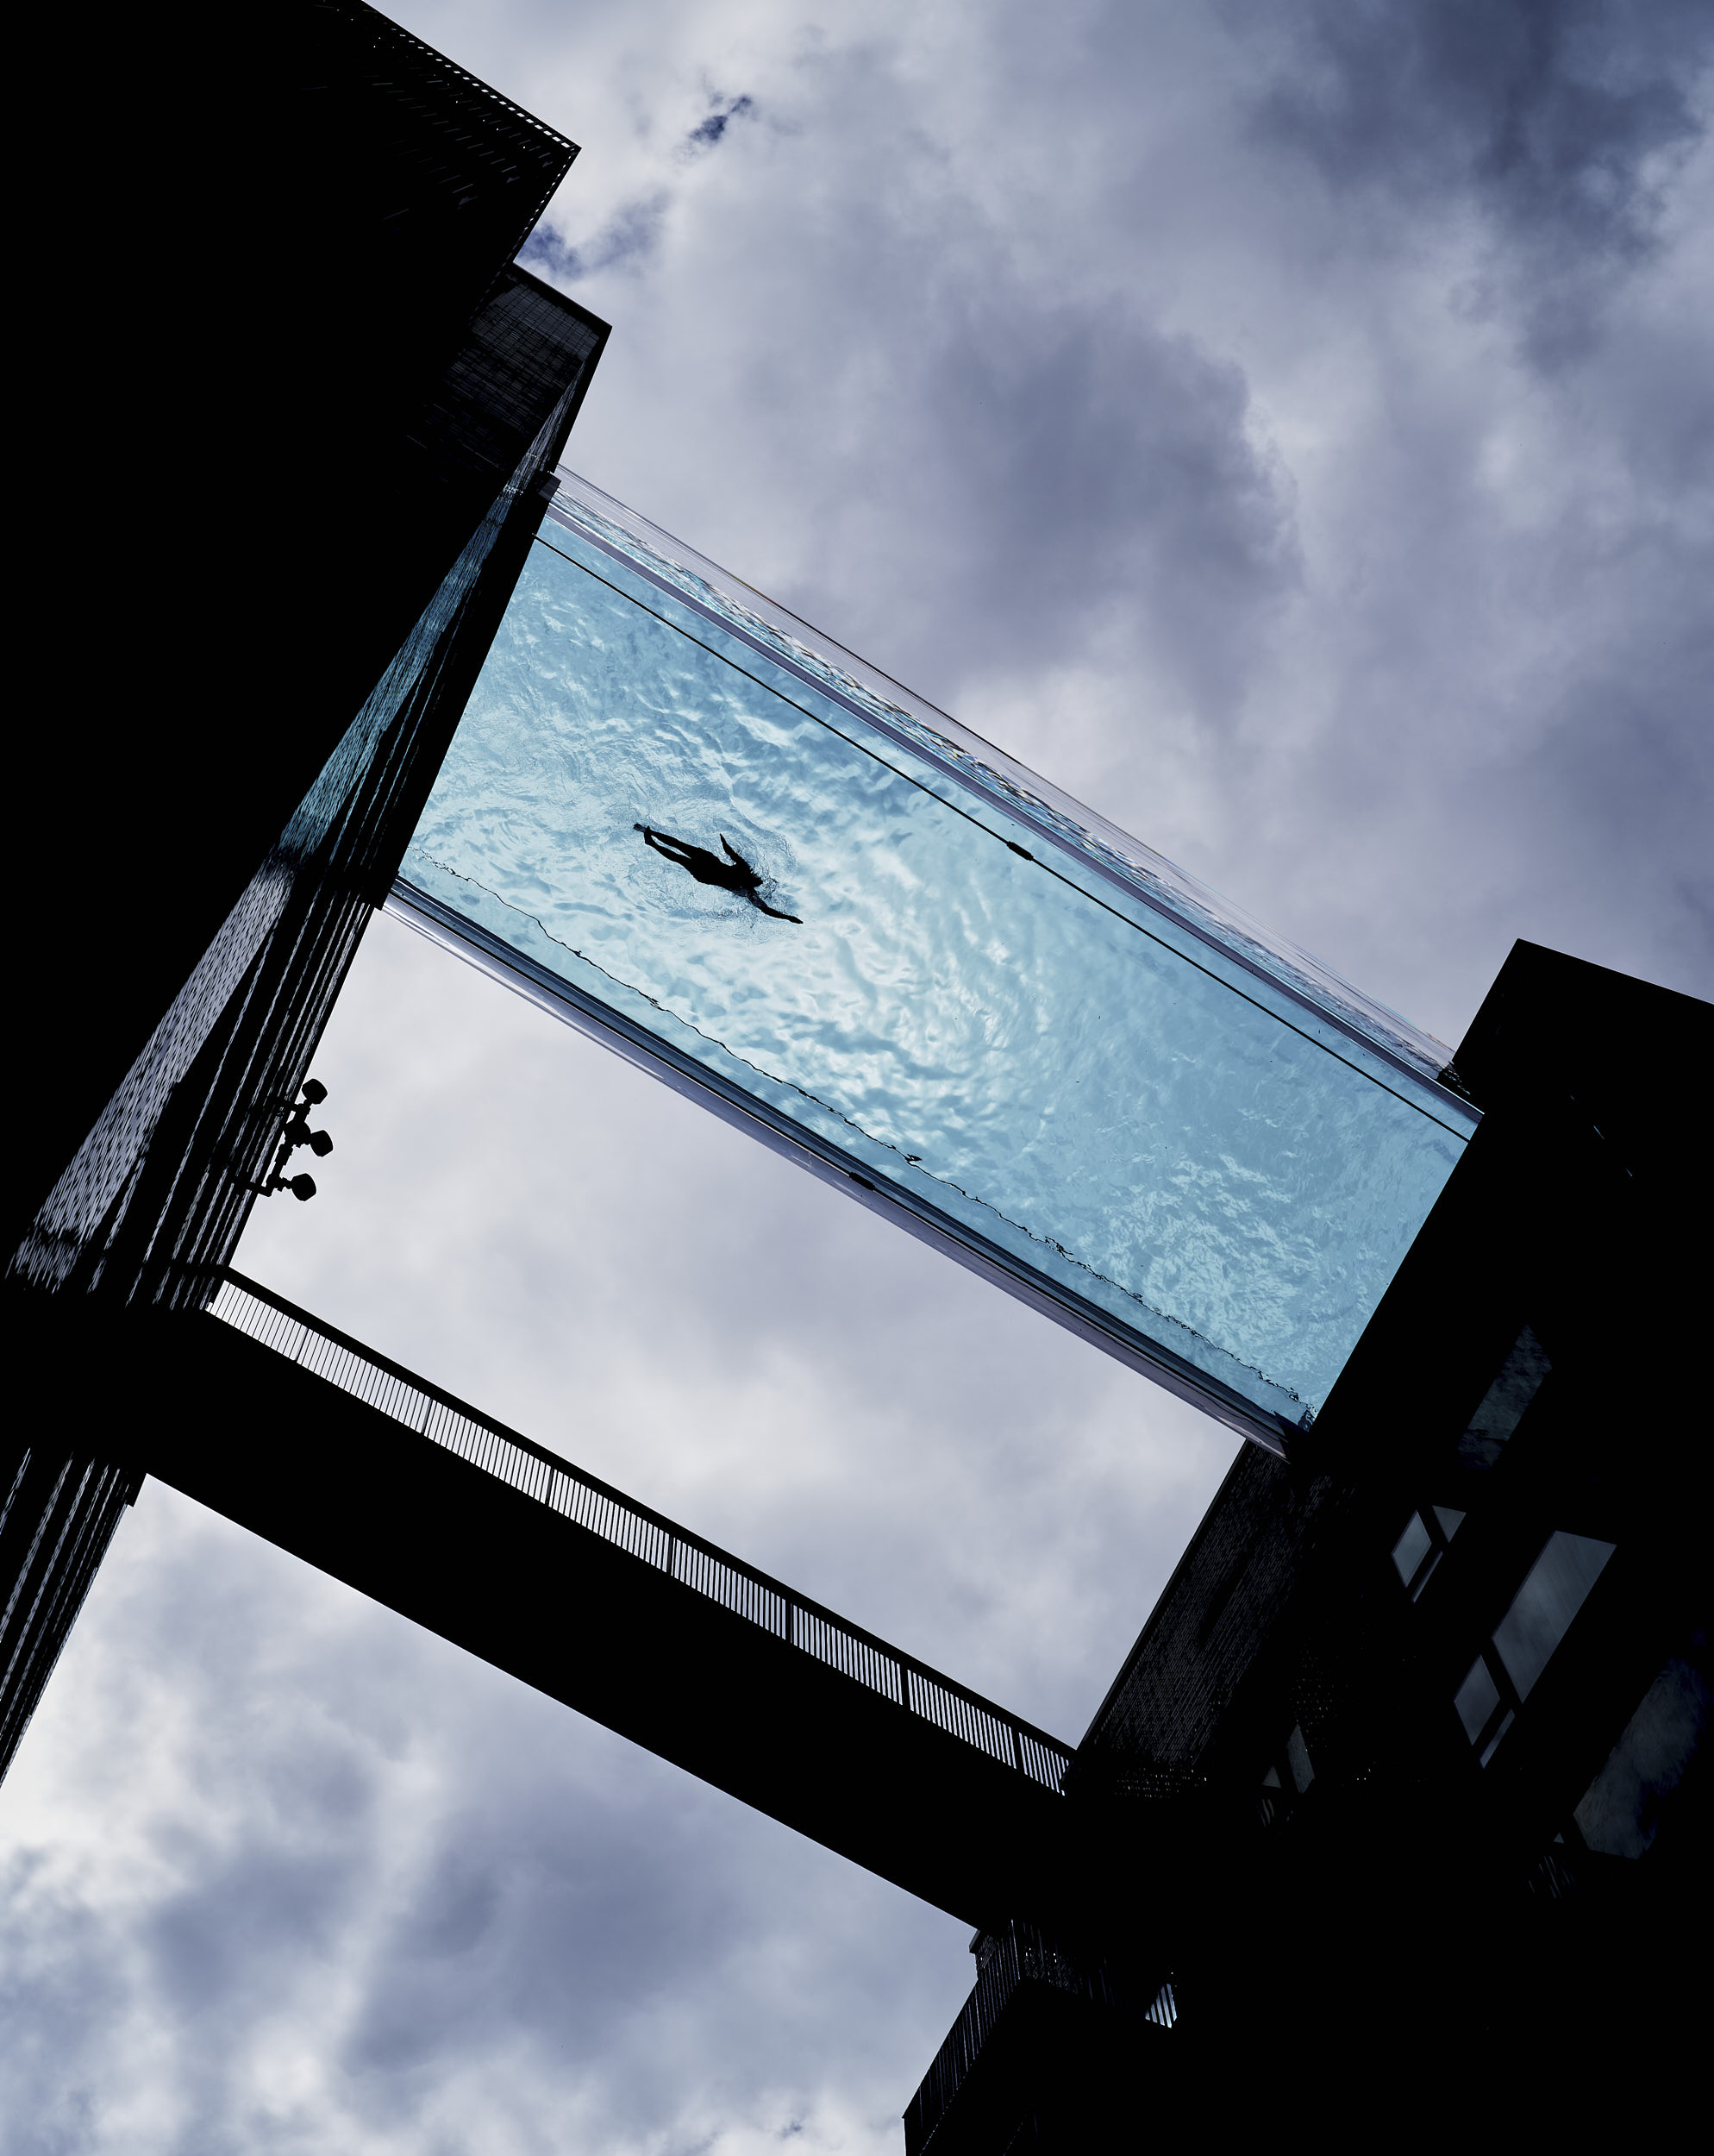 The design was conceived as a swimmable bridge that provides fantastic views across London.